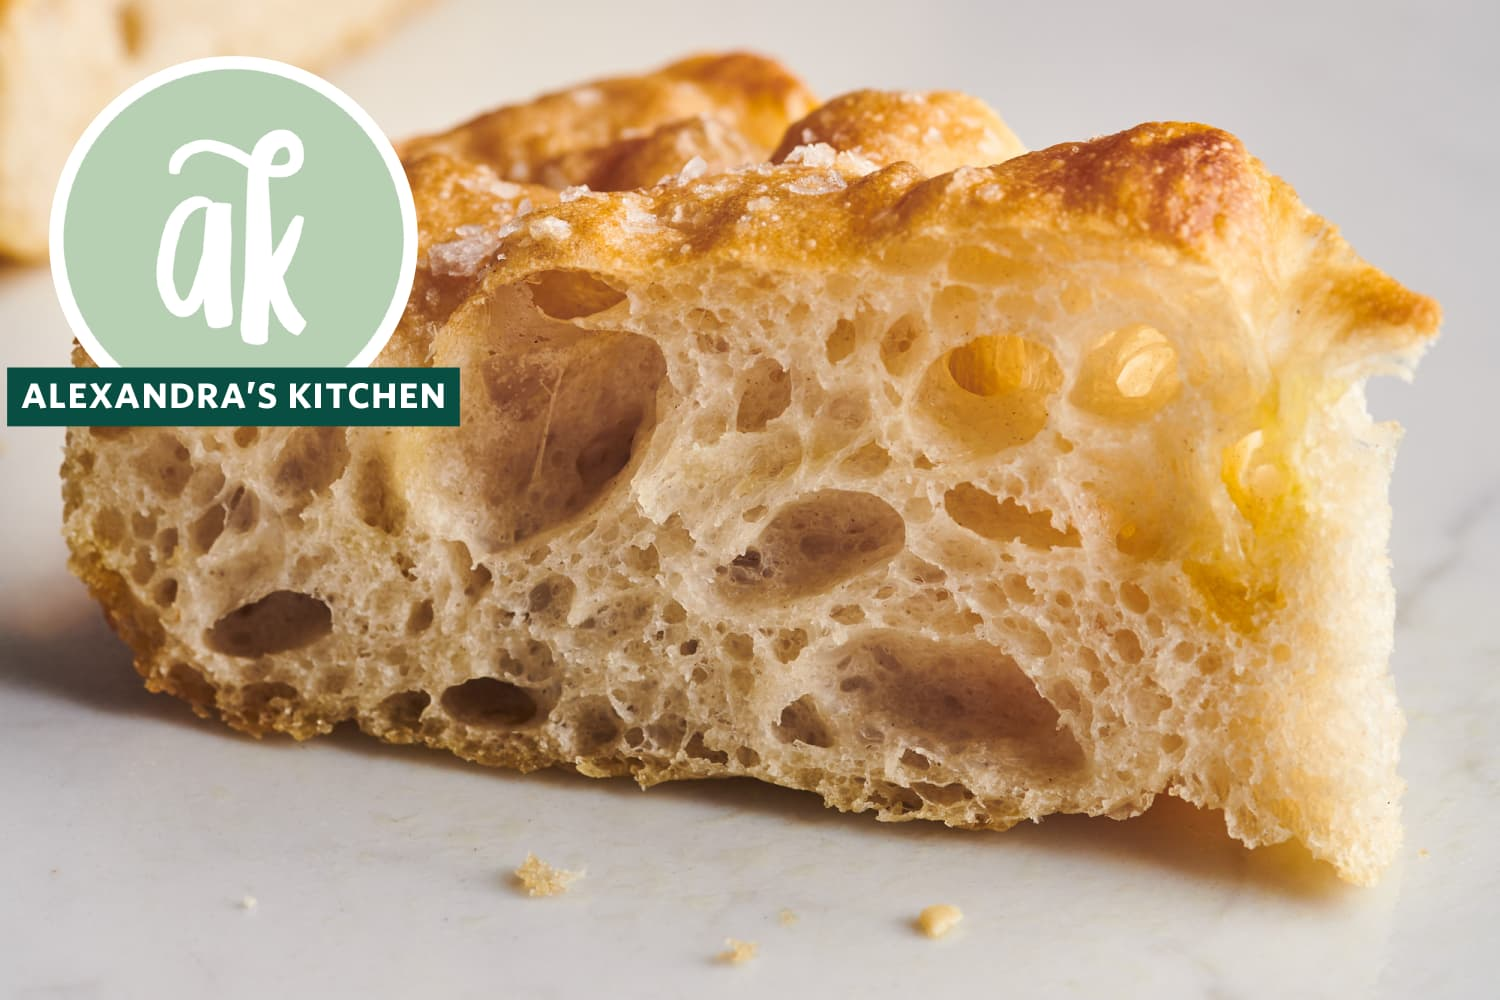 This Impossibly Easy No-Knead Focaccia Recipe Practically Makes Itself